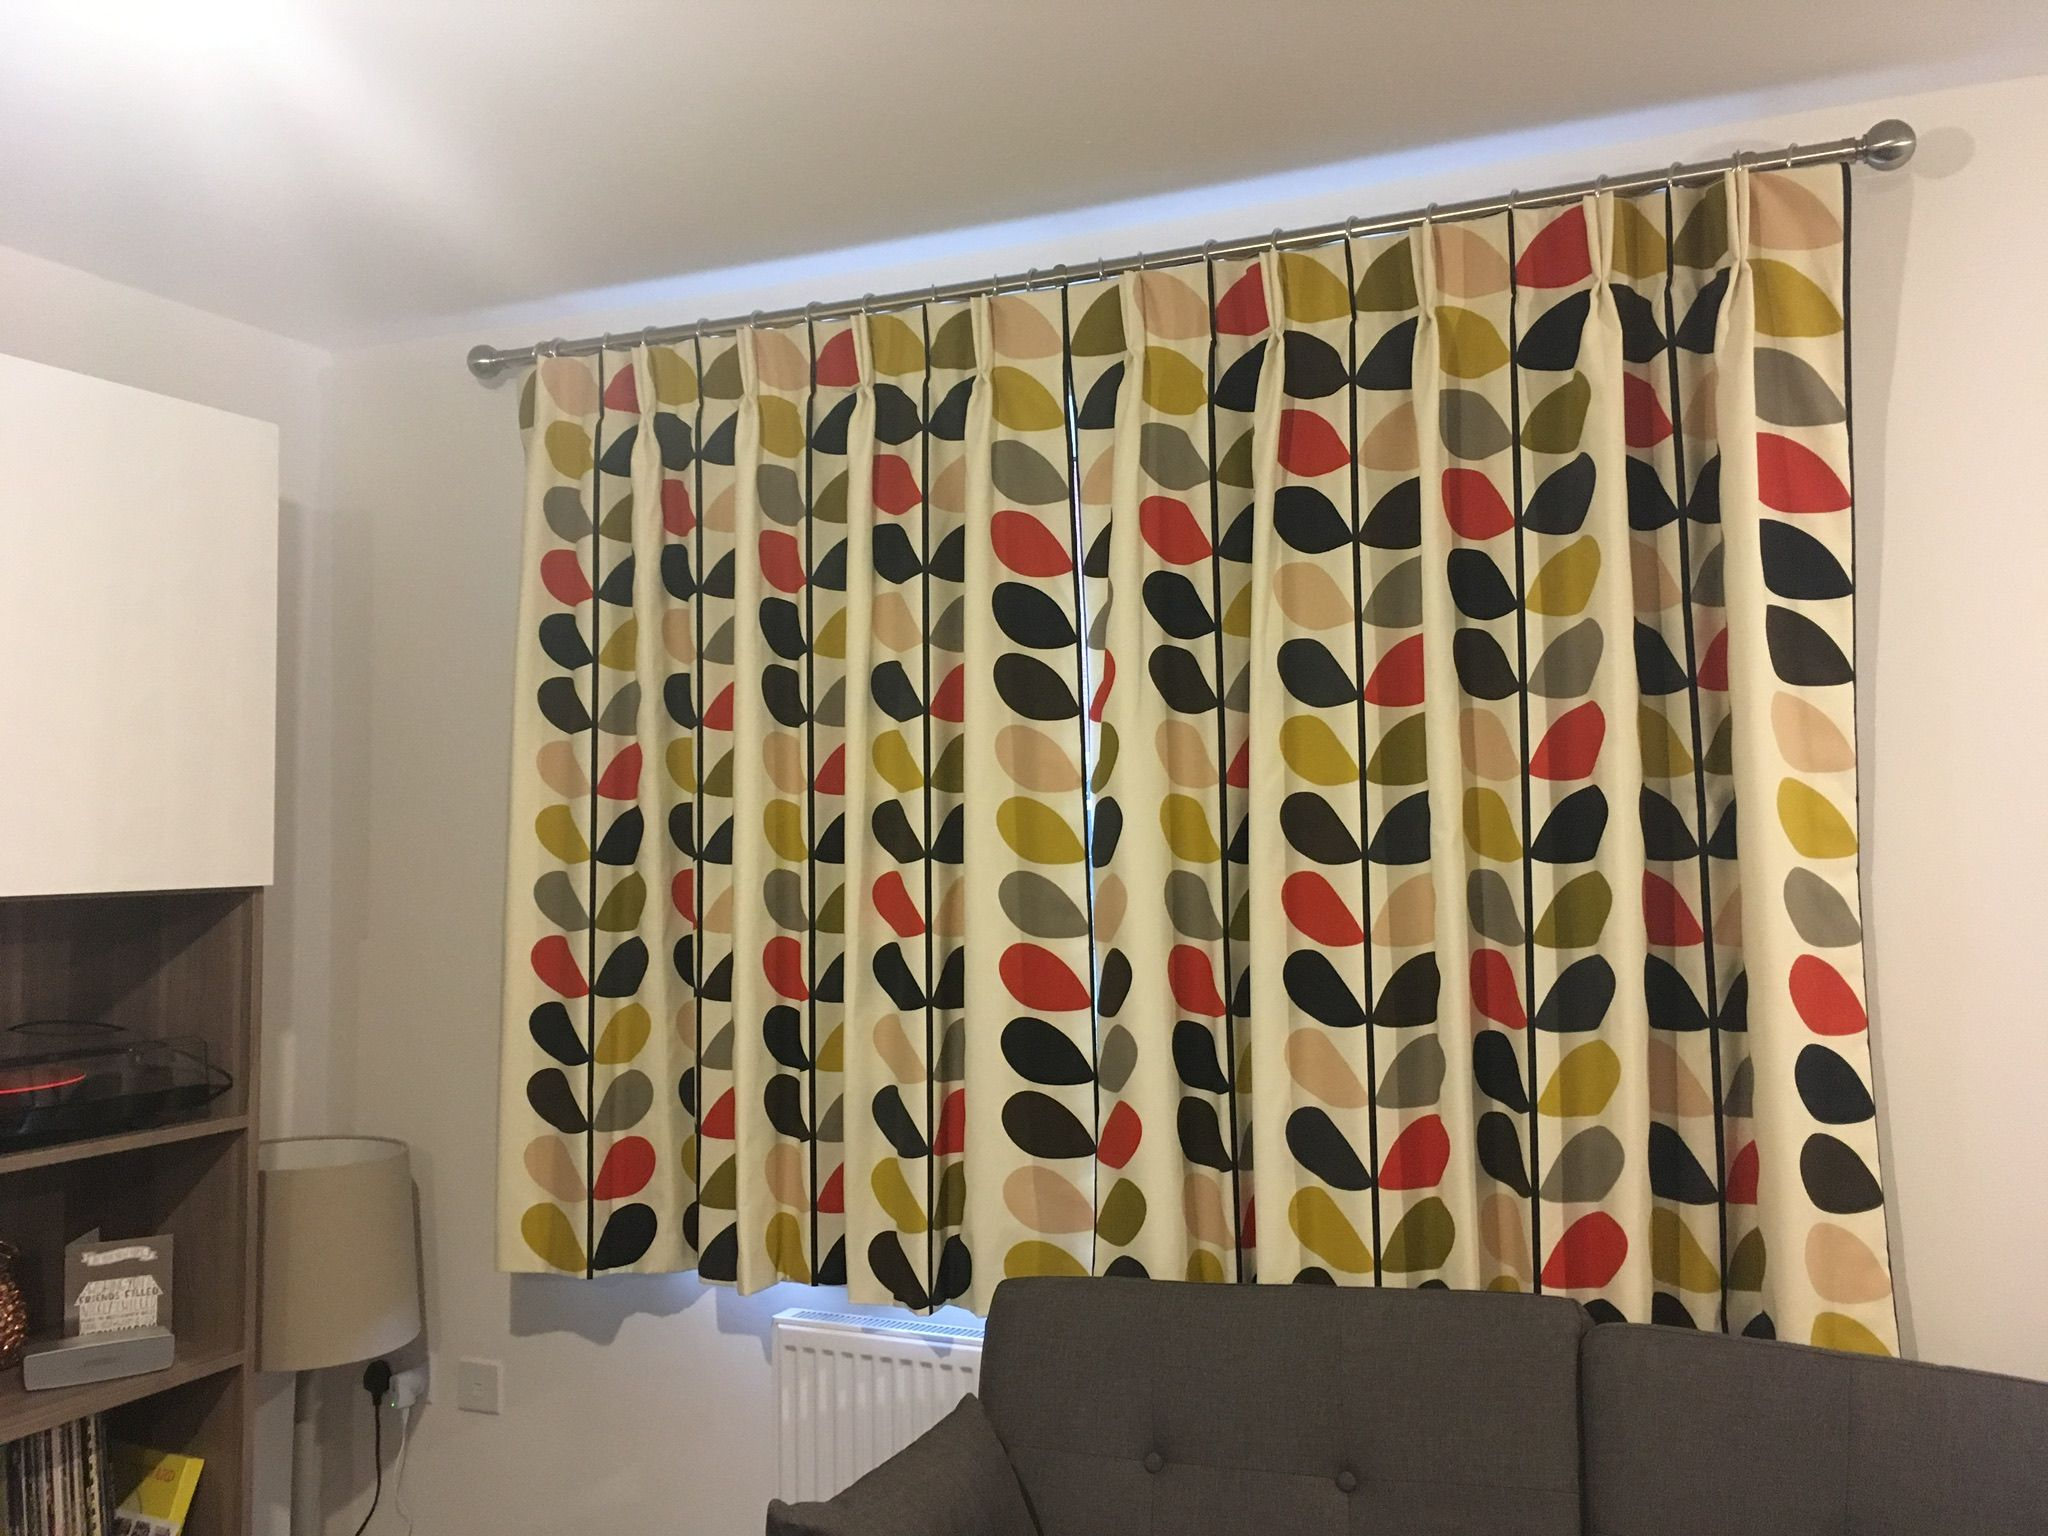 Another cool fabric from orla kiely love the retro style and iuve